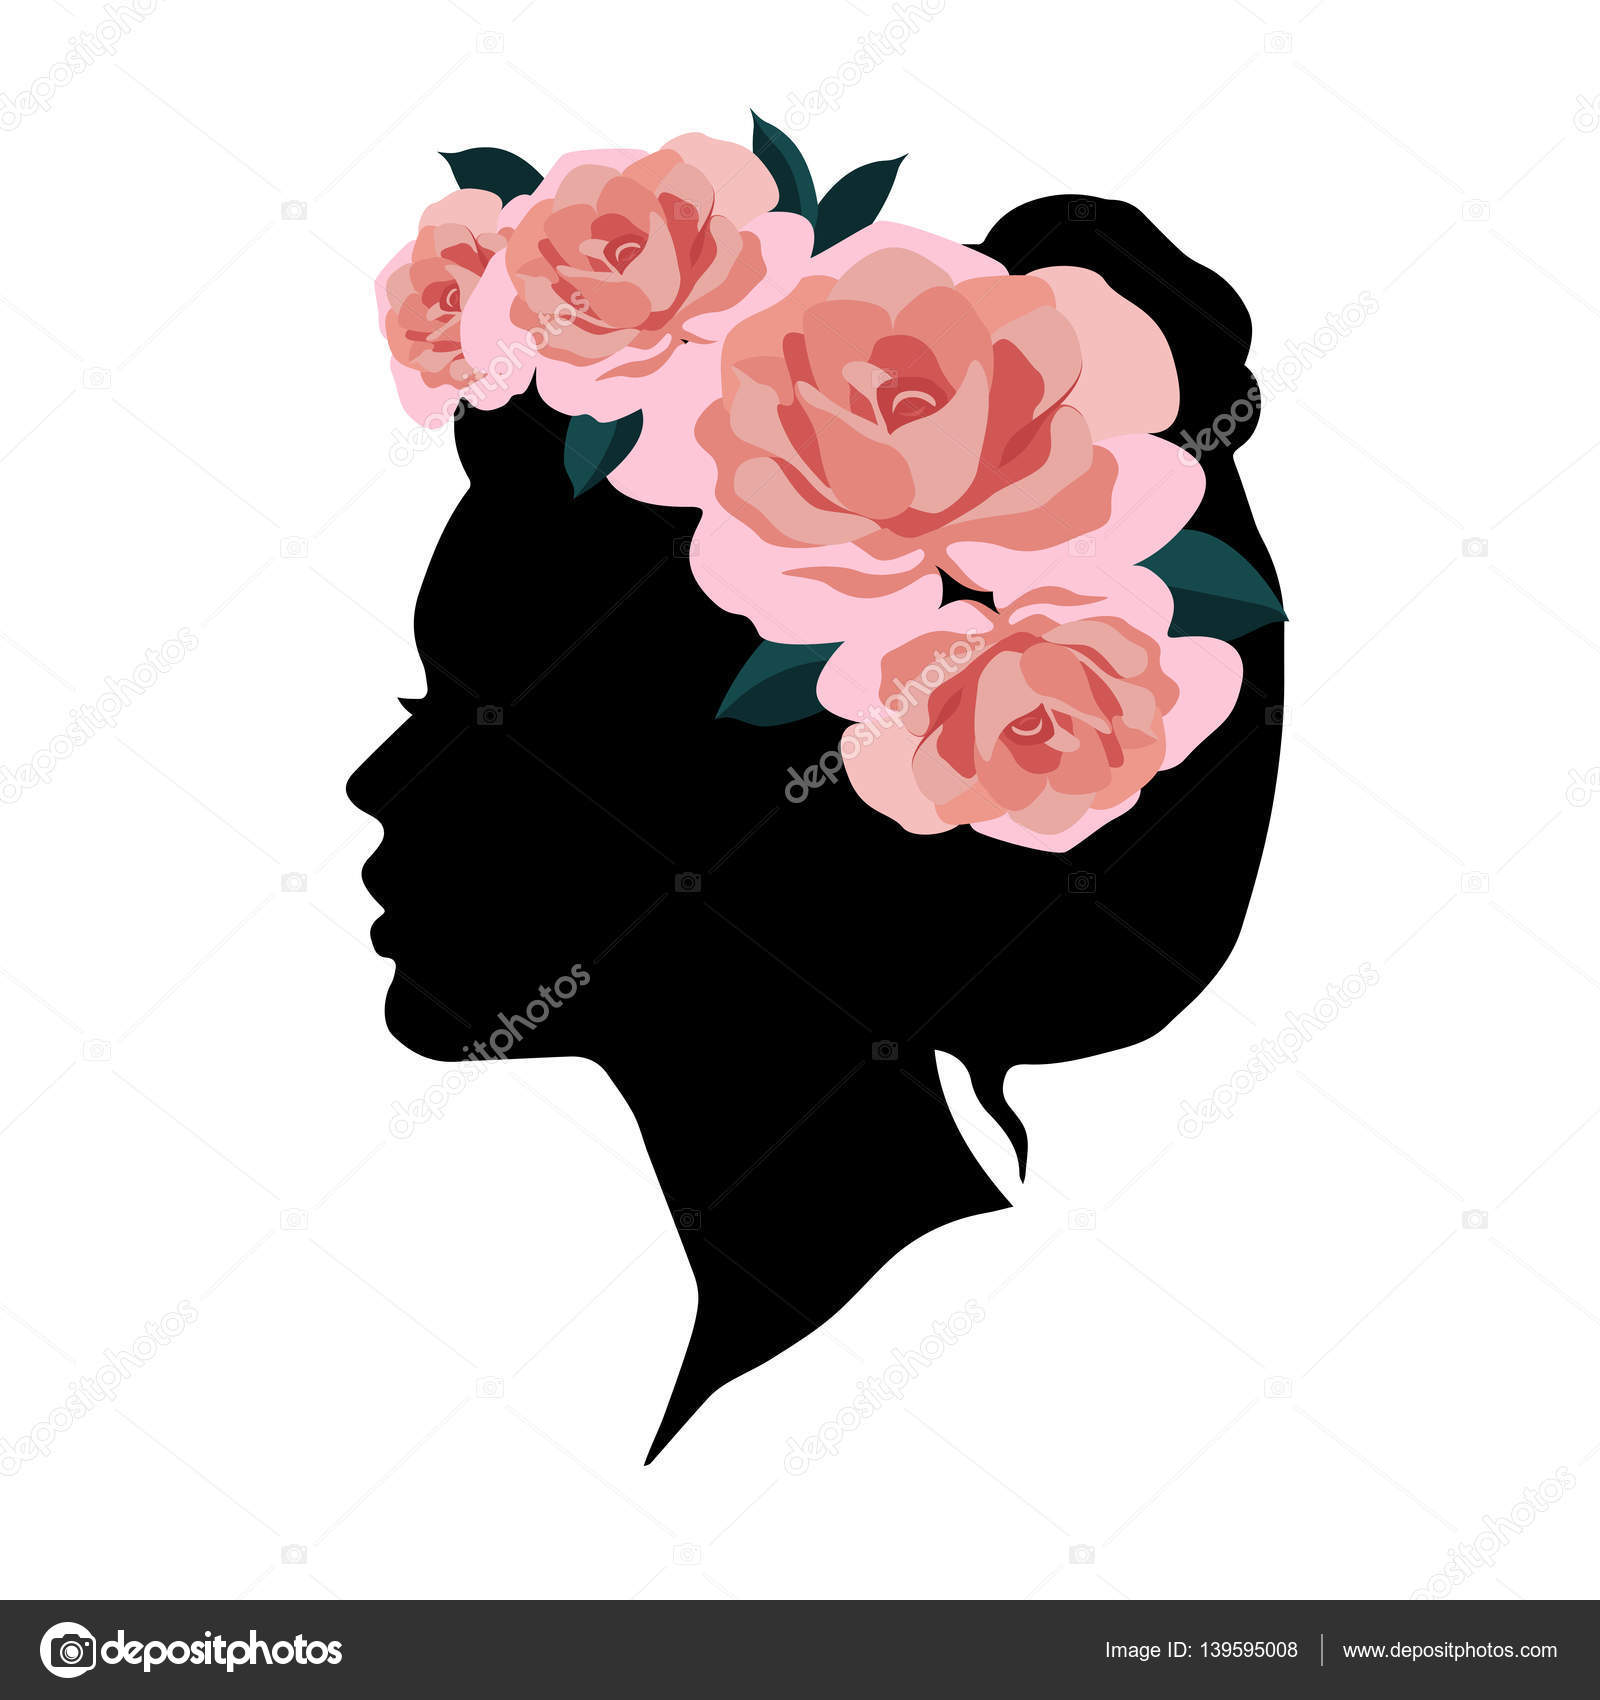 Beautiful Woman Silhouette With Wreath Of Gorgeous Pink Roses On